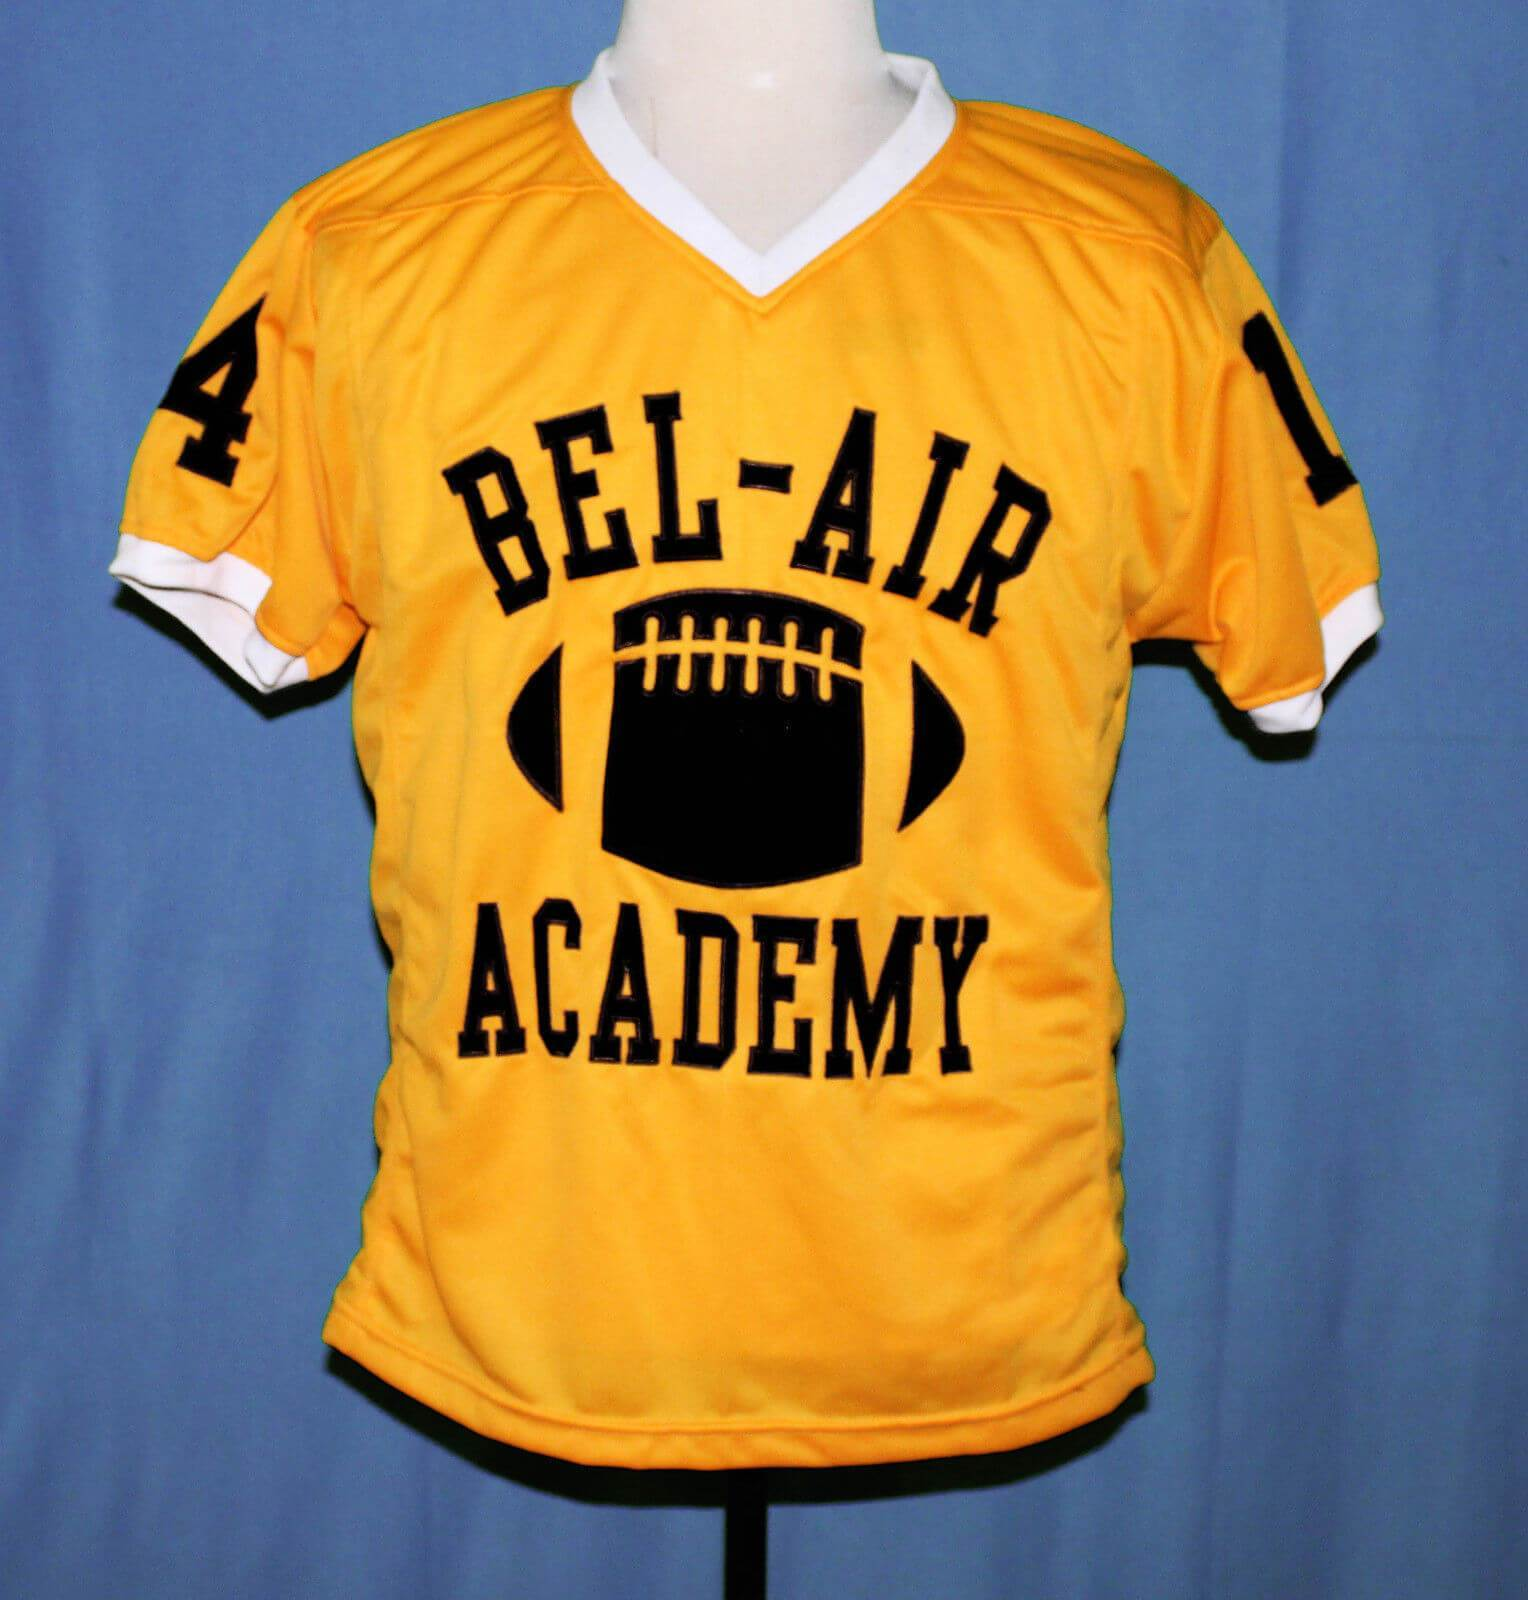 Bel Air Academy 14 Football Jersey Stitched Will Smith - Jersey Champs